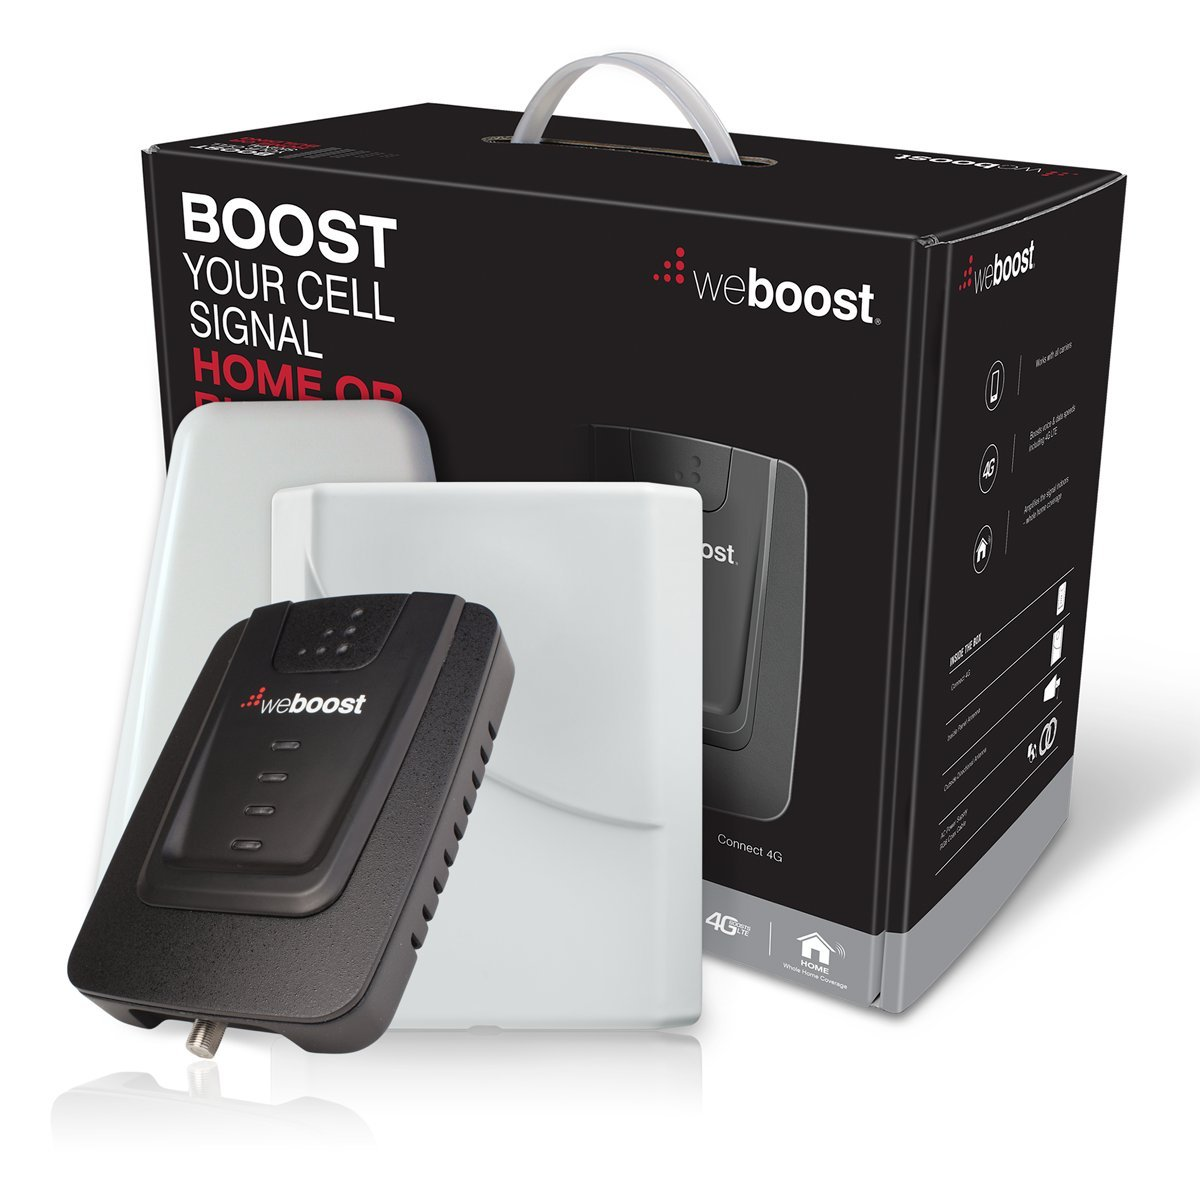 weBoost Connect 4G Indoor Cell Phone Signal Booster for Home and Office - Supports 5,000 Square Foot Area by weBoost